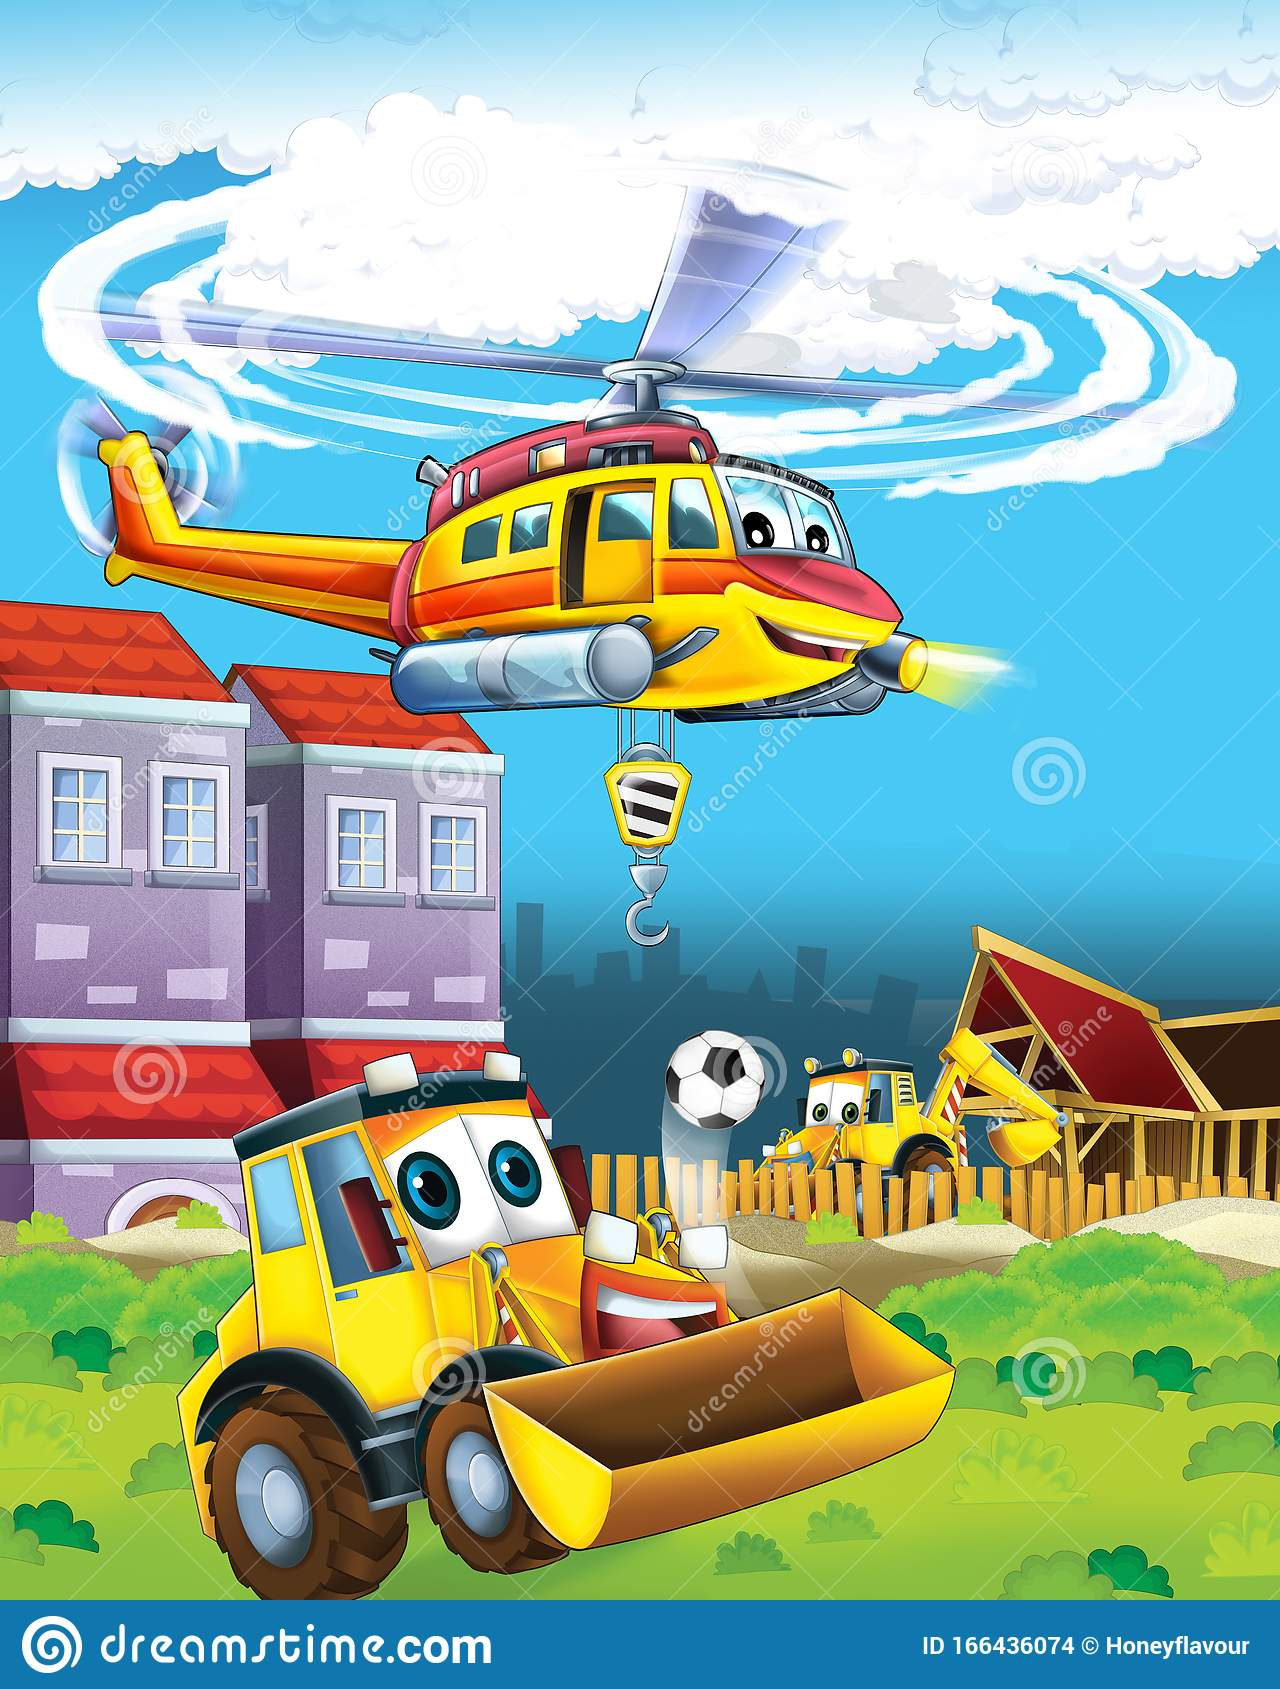 Cartoon Scene With Industry Cars On Construction Site And Flying Helicopter And Plane Illustration For Children Stock Illustration Illustration Of Journey Helicopter 166436074